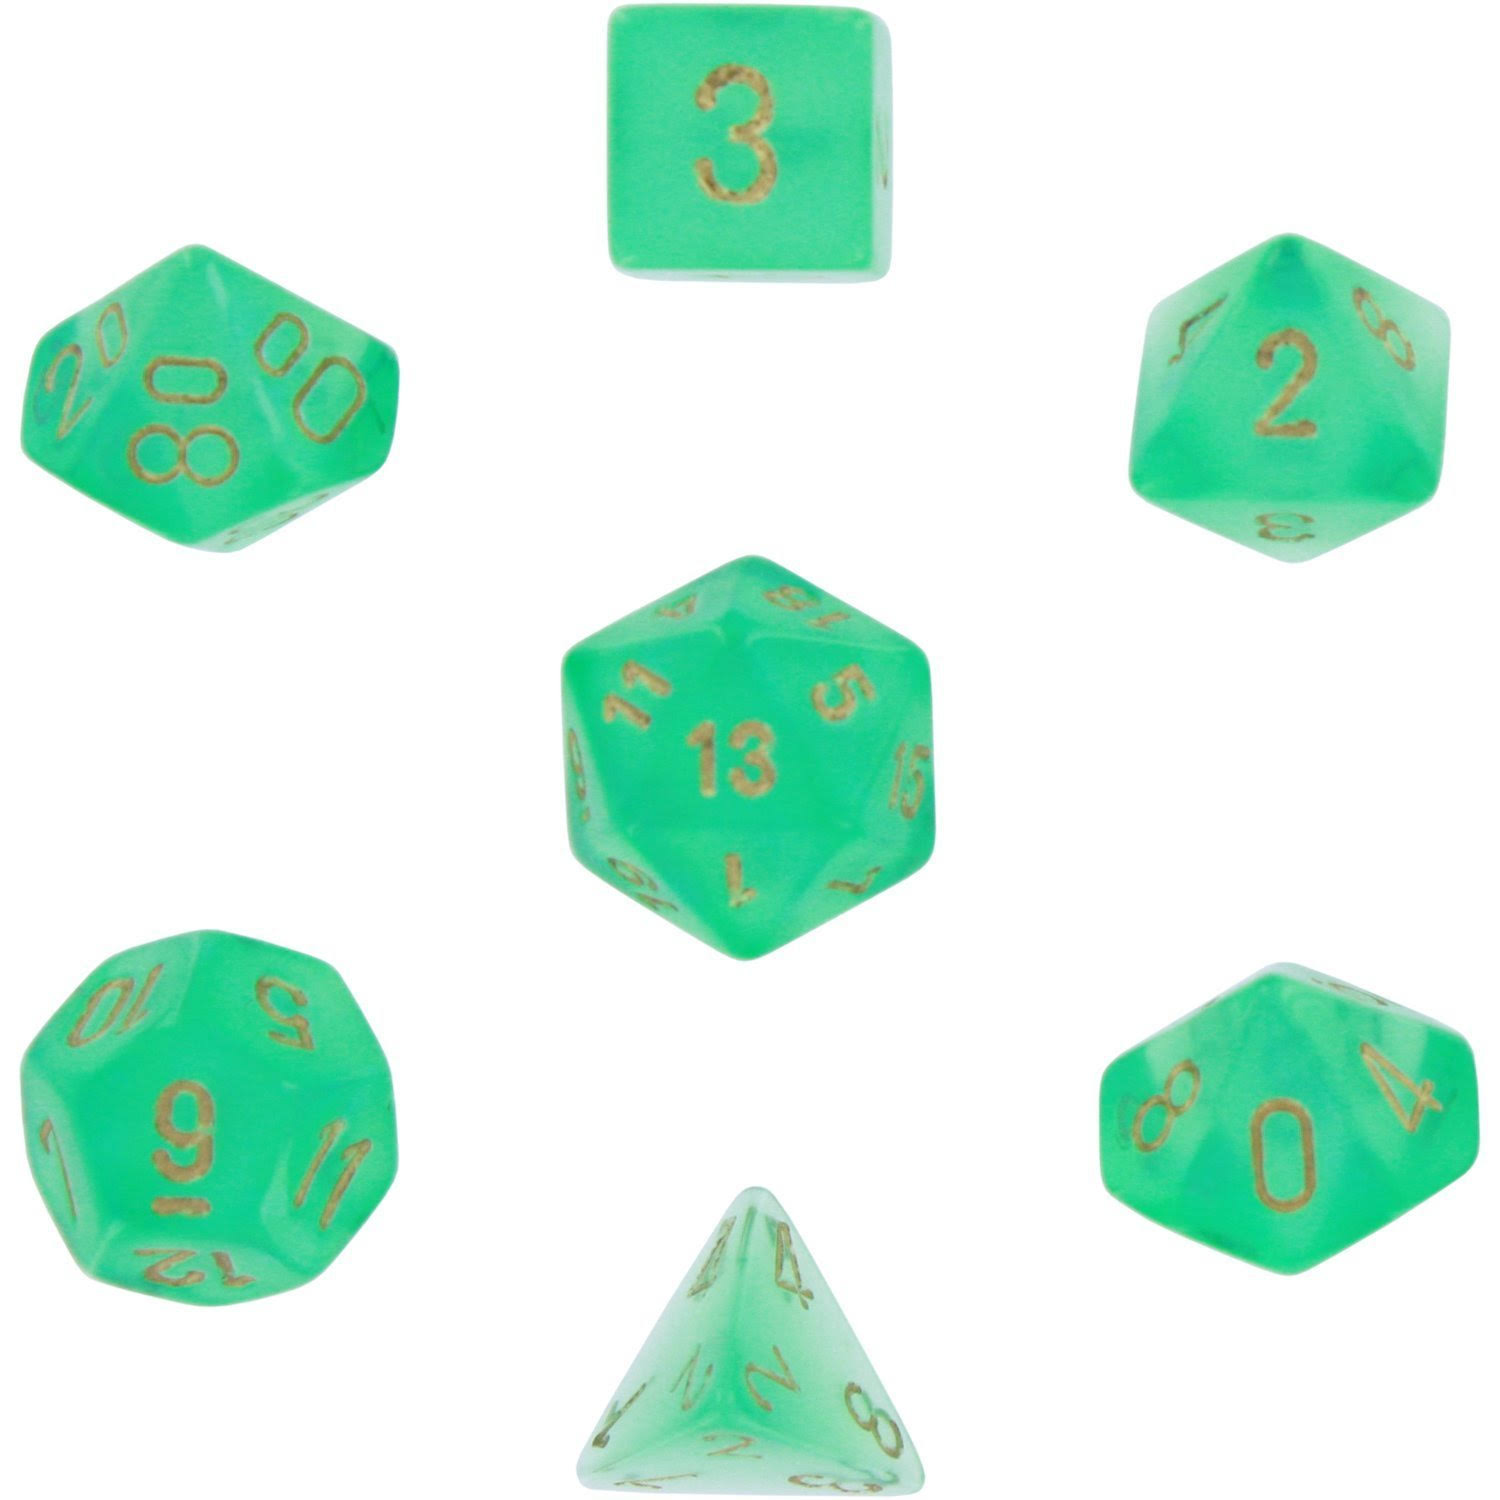 Chessex Borealis #2 Polyhedral Light Green/Gold 7-Die Set